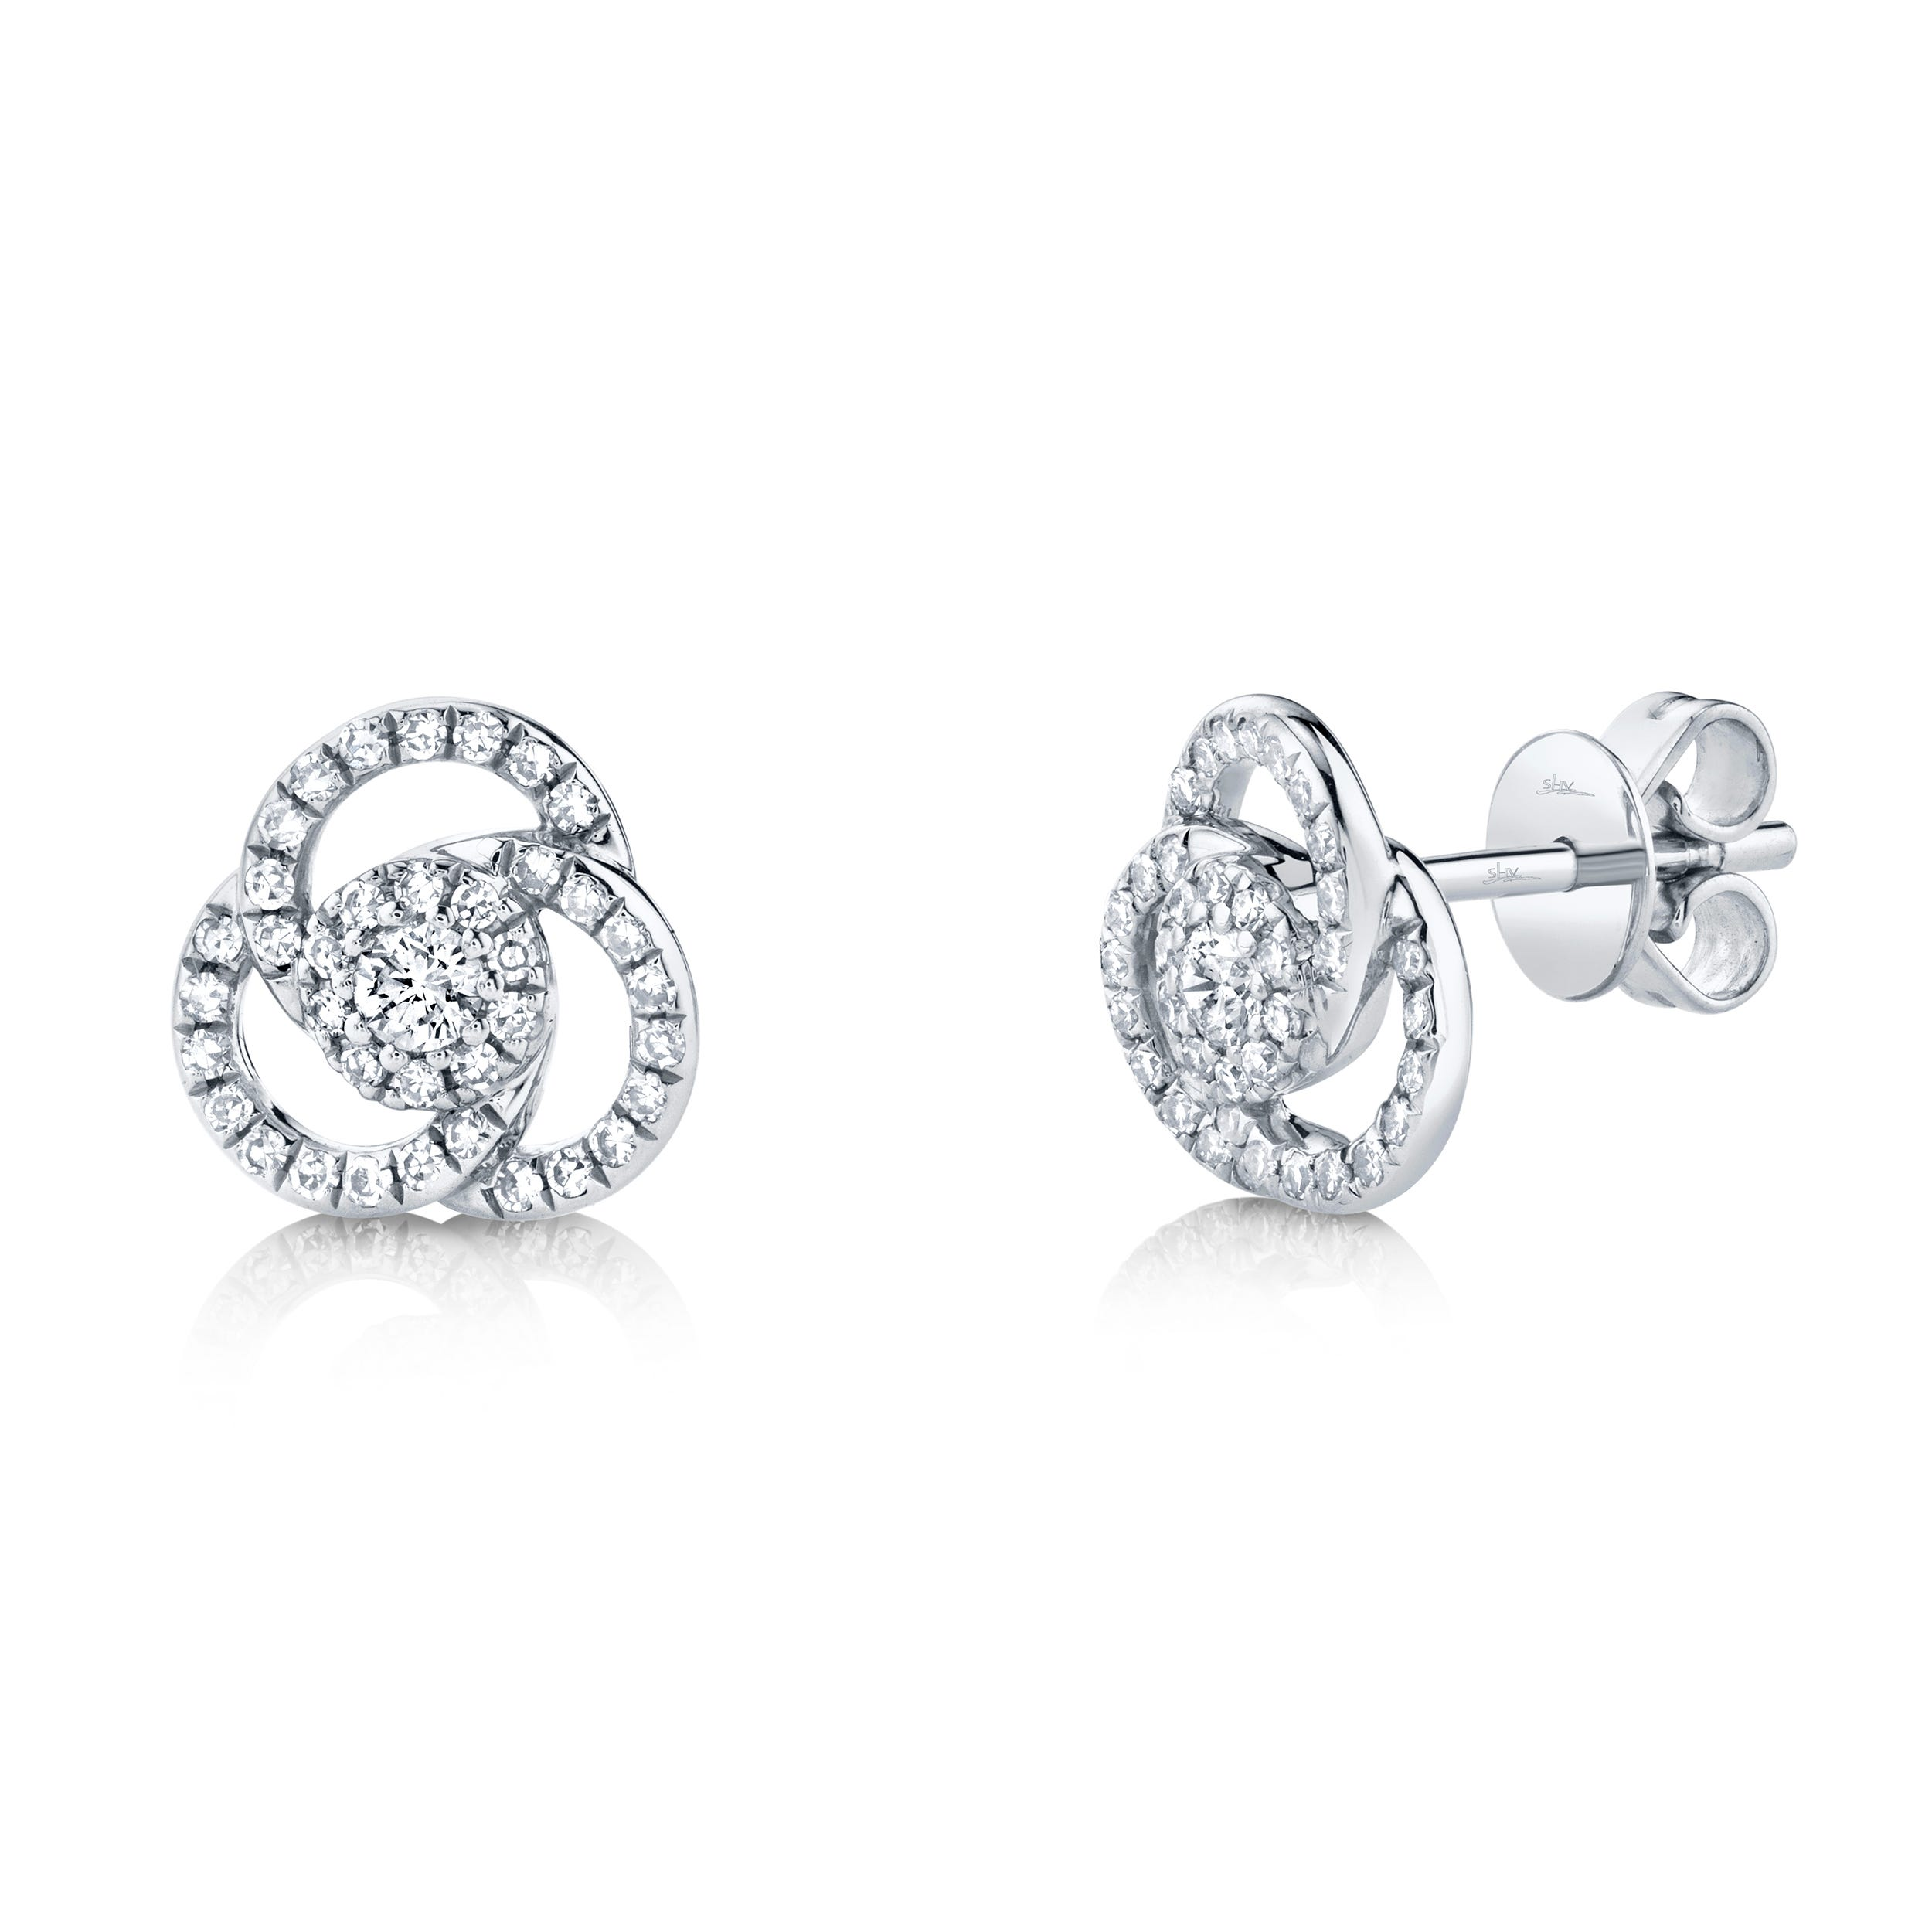 Shy Creation Knot Diamond 1/3ctw. Stud Earrings in 14k White Gold SC55008024